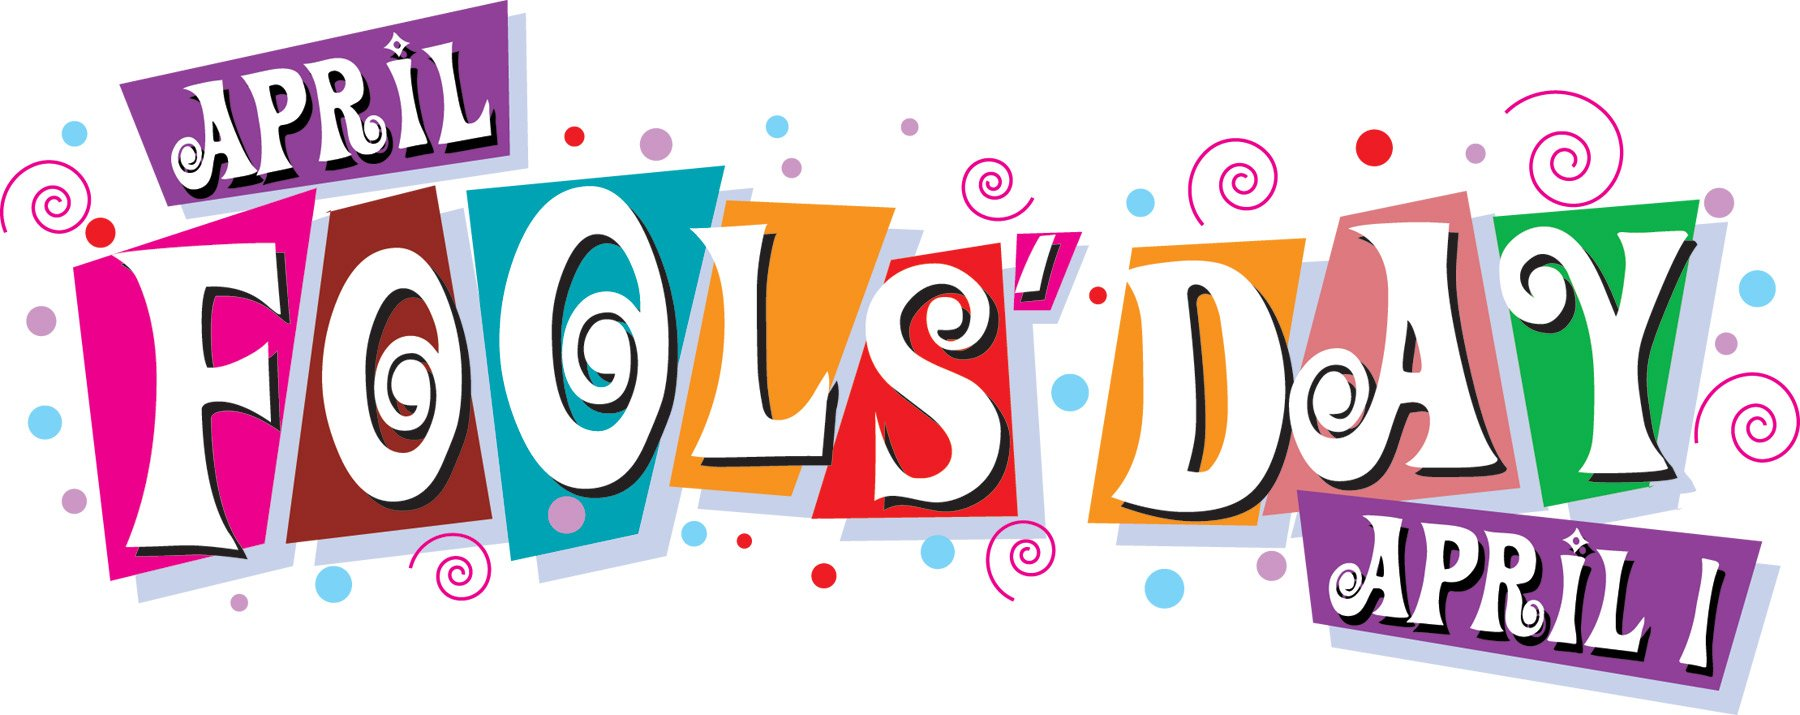 Wednesday Is April Fools' Day! Kids News Article